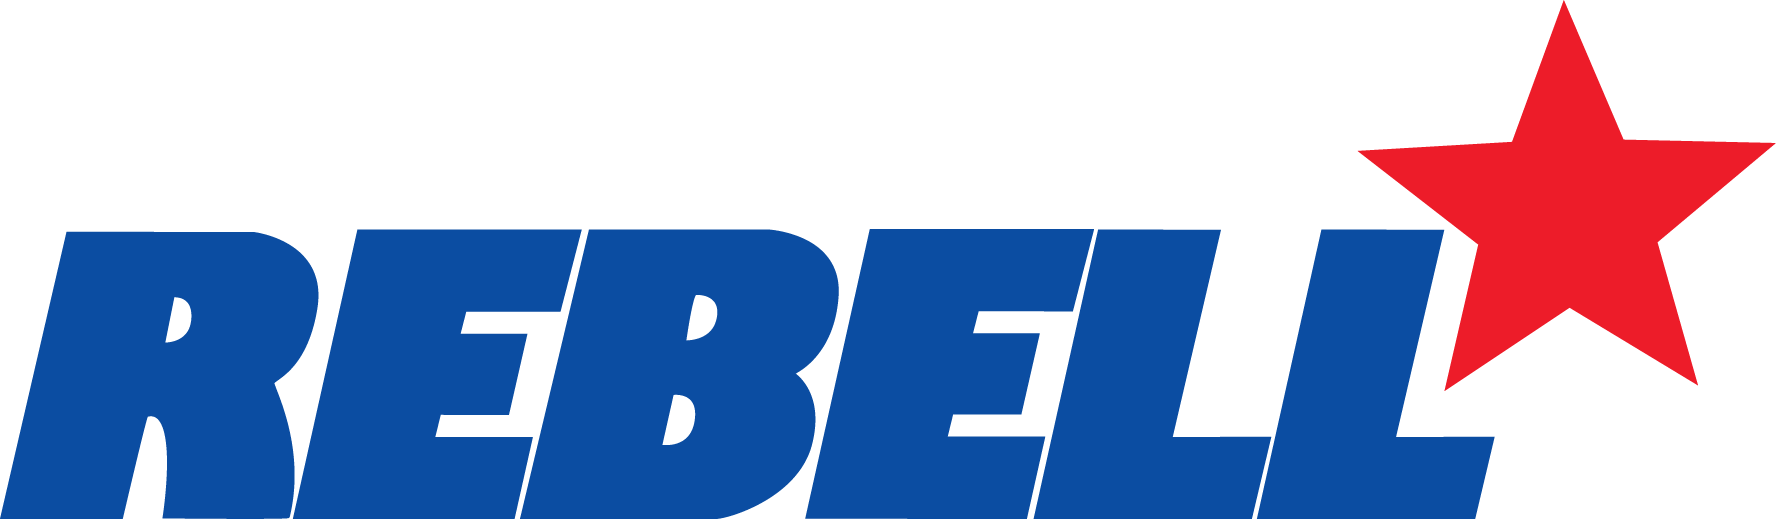 cropped-rebell_logo-1.png